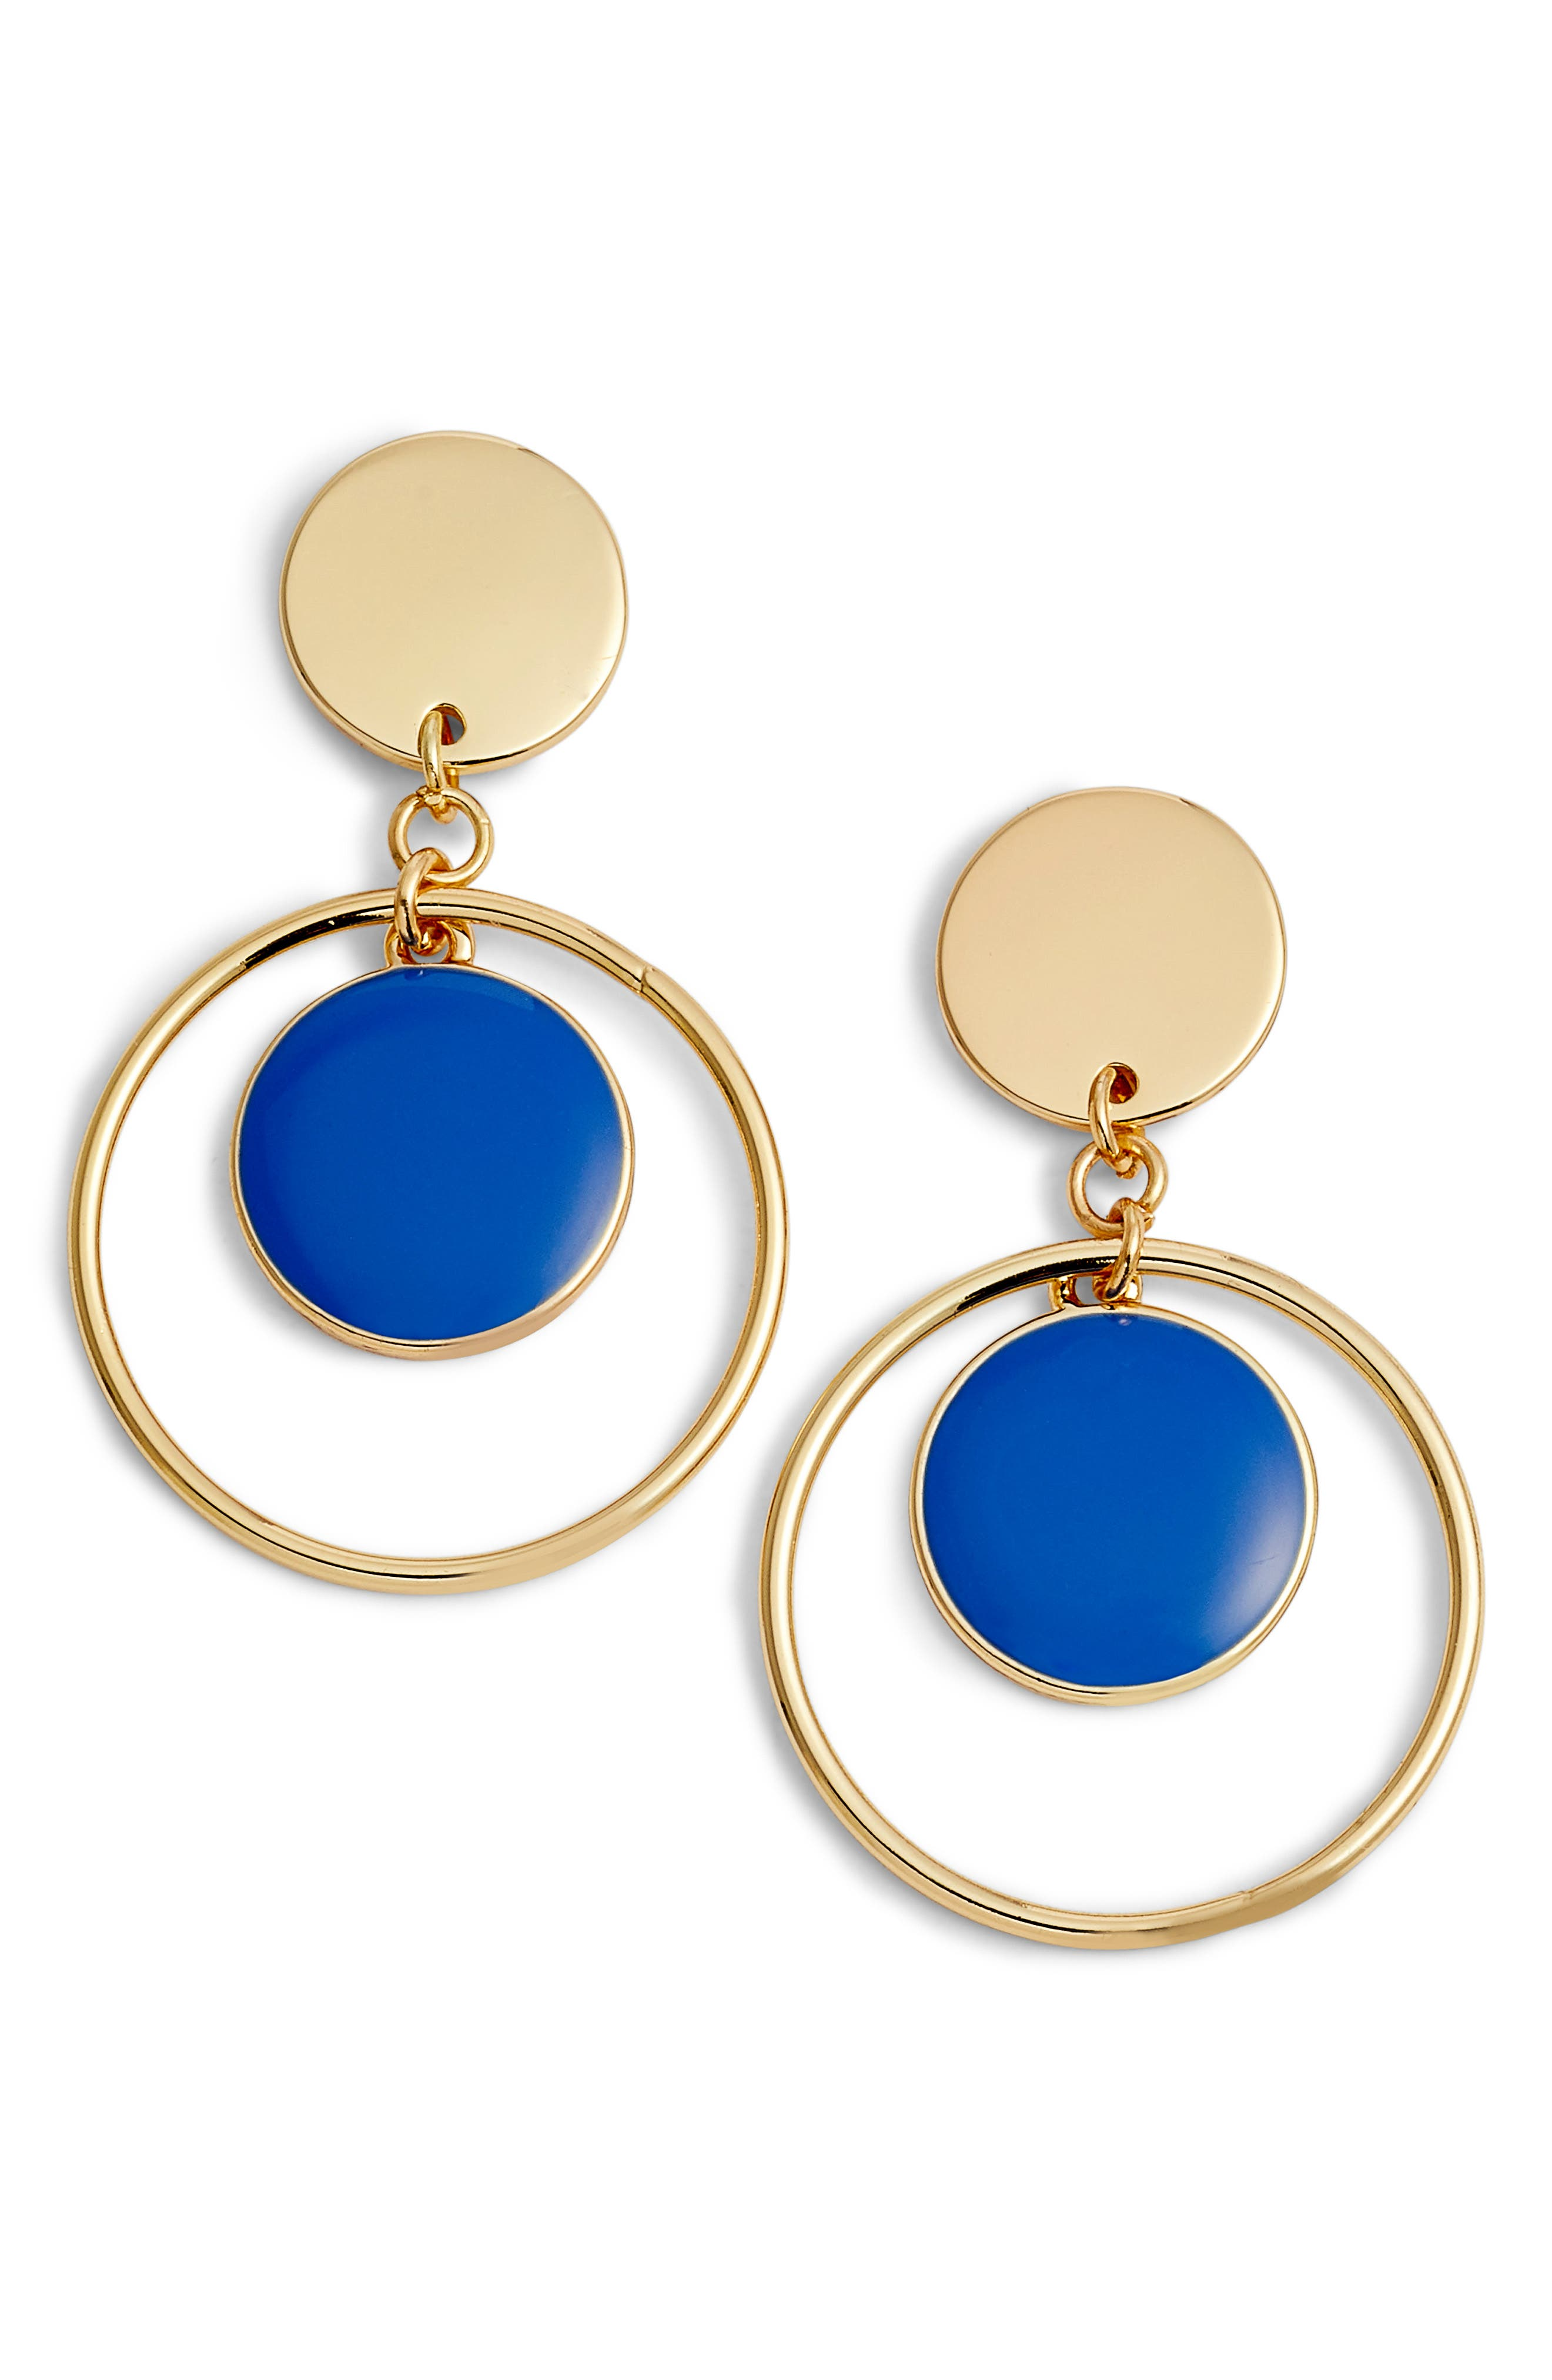 Double Disc with Hoop Drop Earrings,                         Main,                         color, Blue- Gold